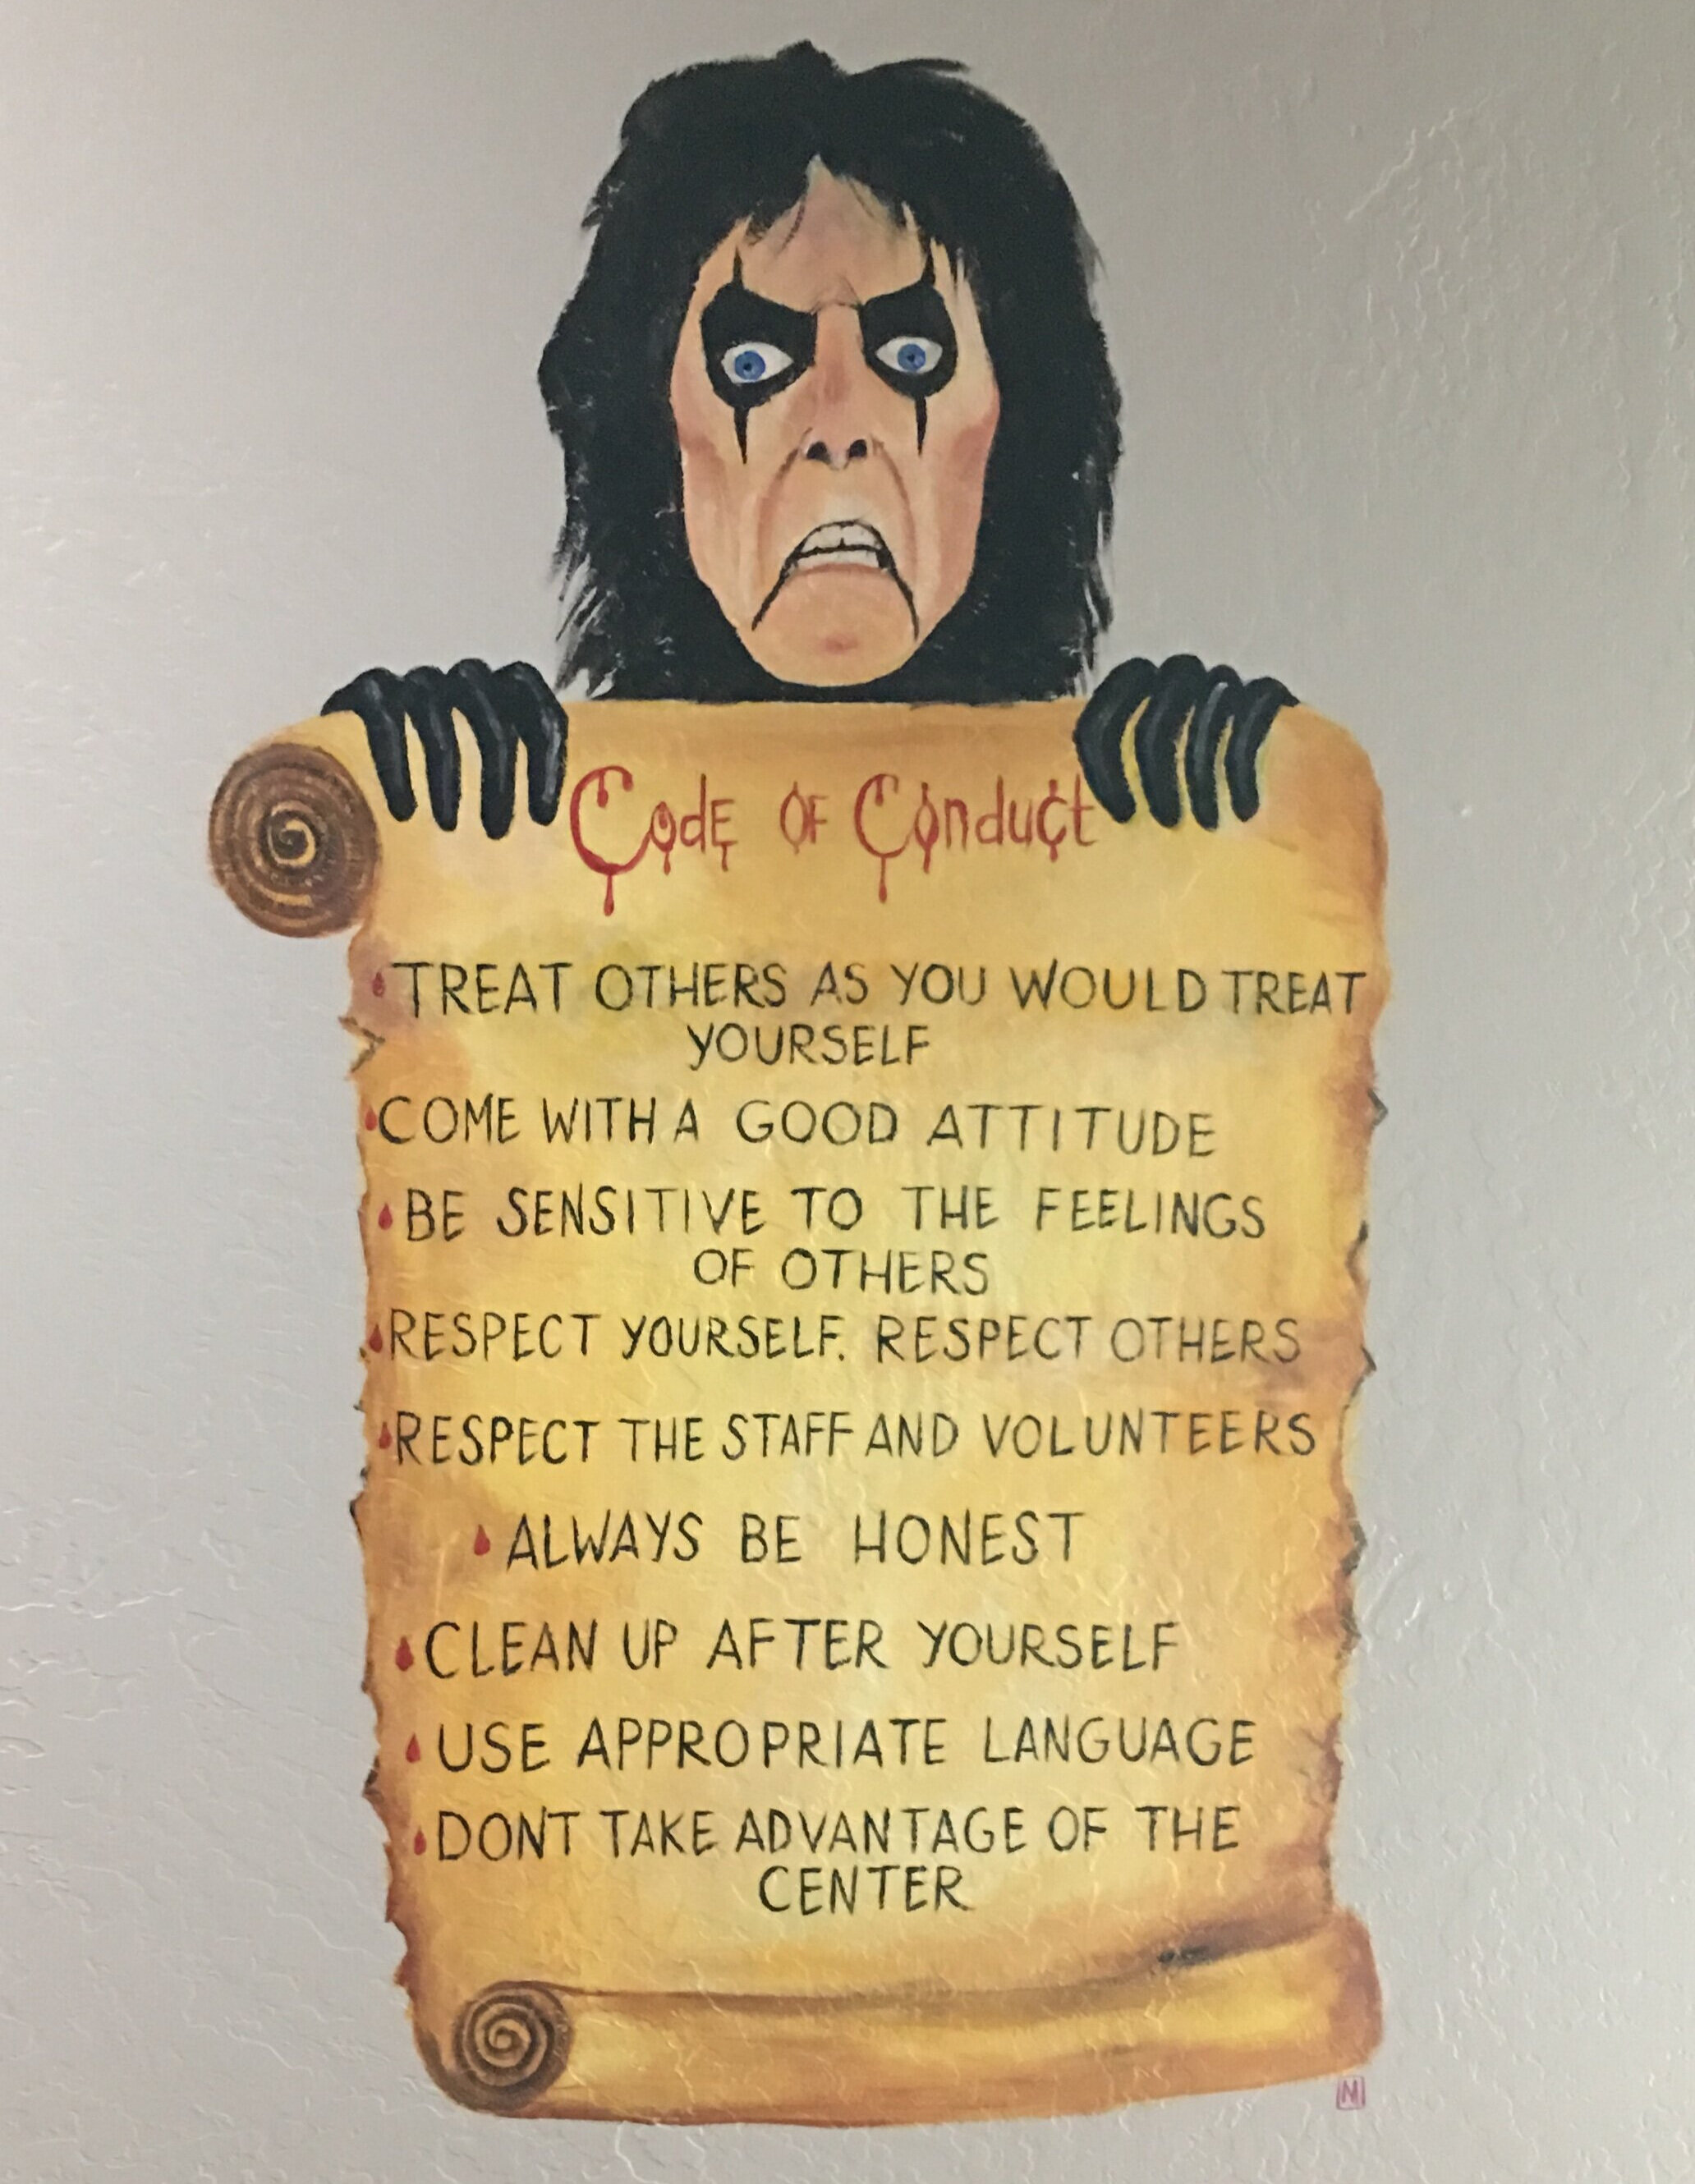 Rules Posted at Alice Cooper Solid Rock Teen Center, Phoenix AZ